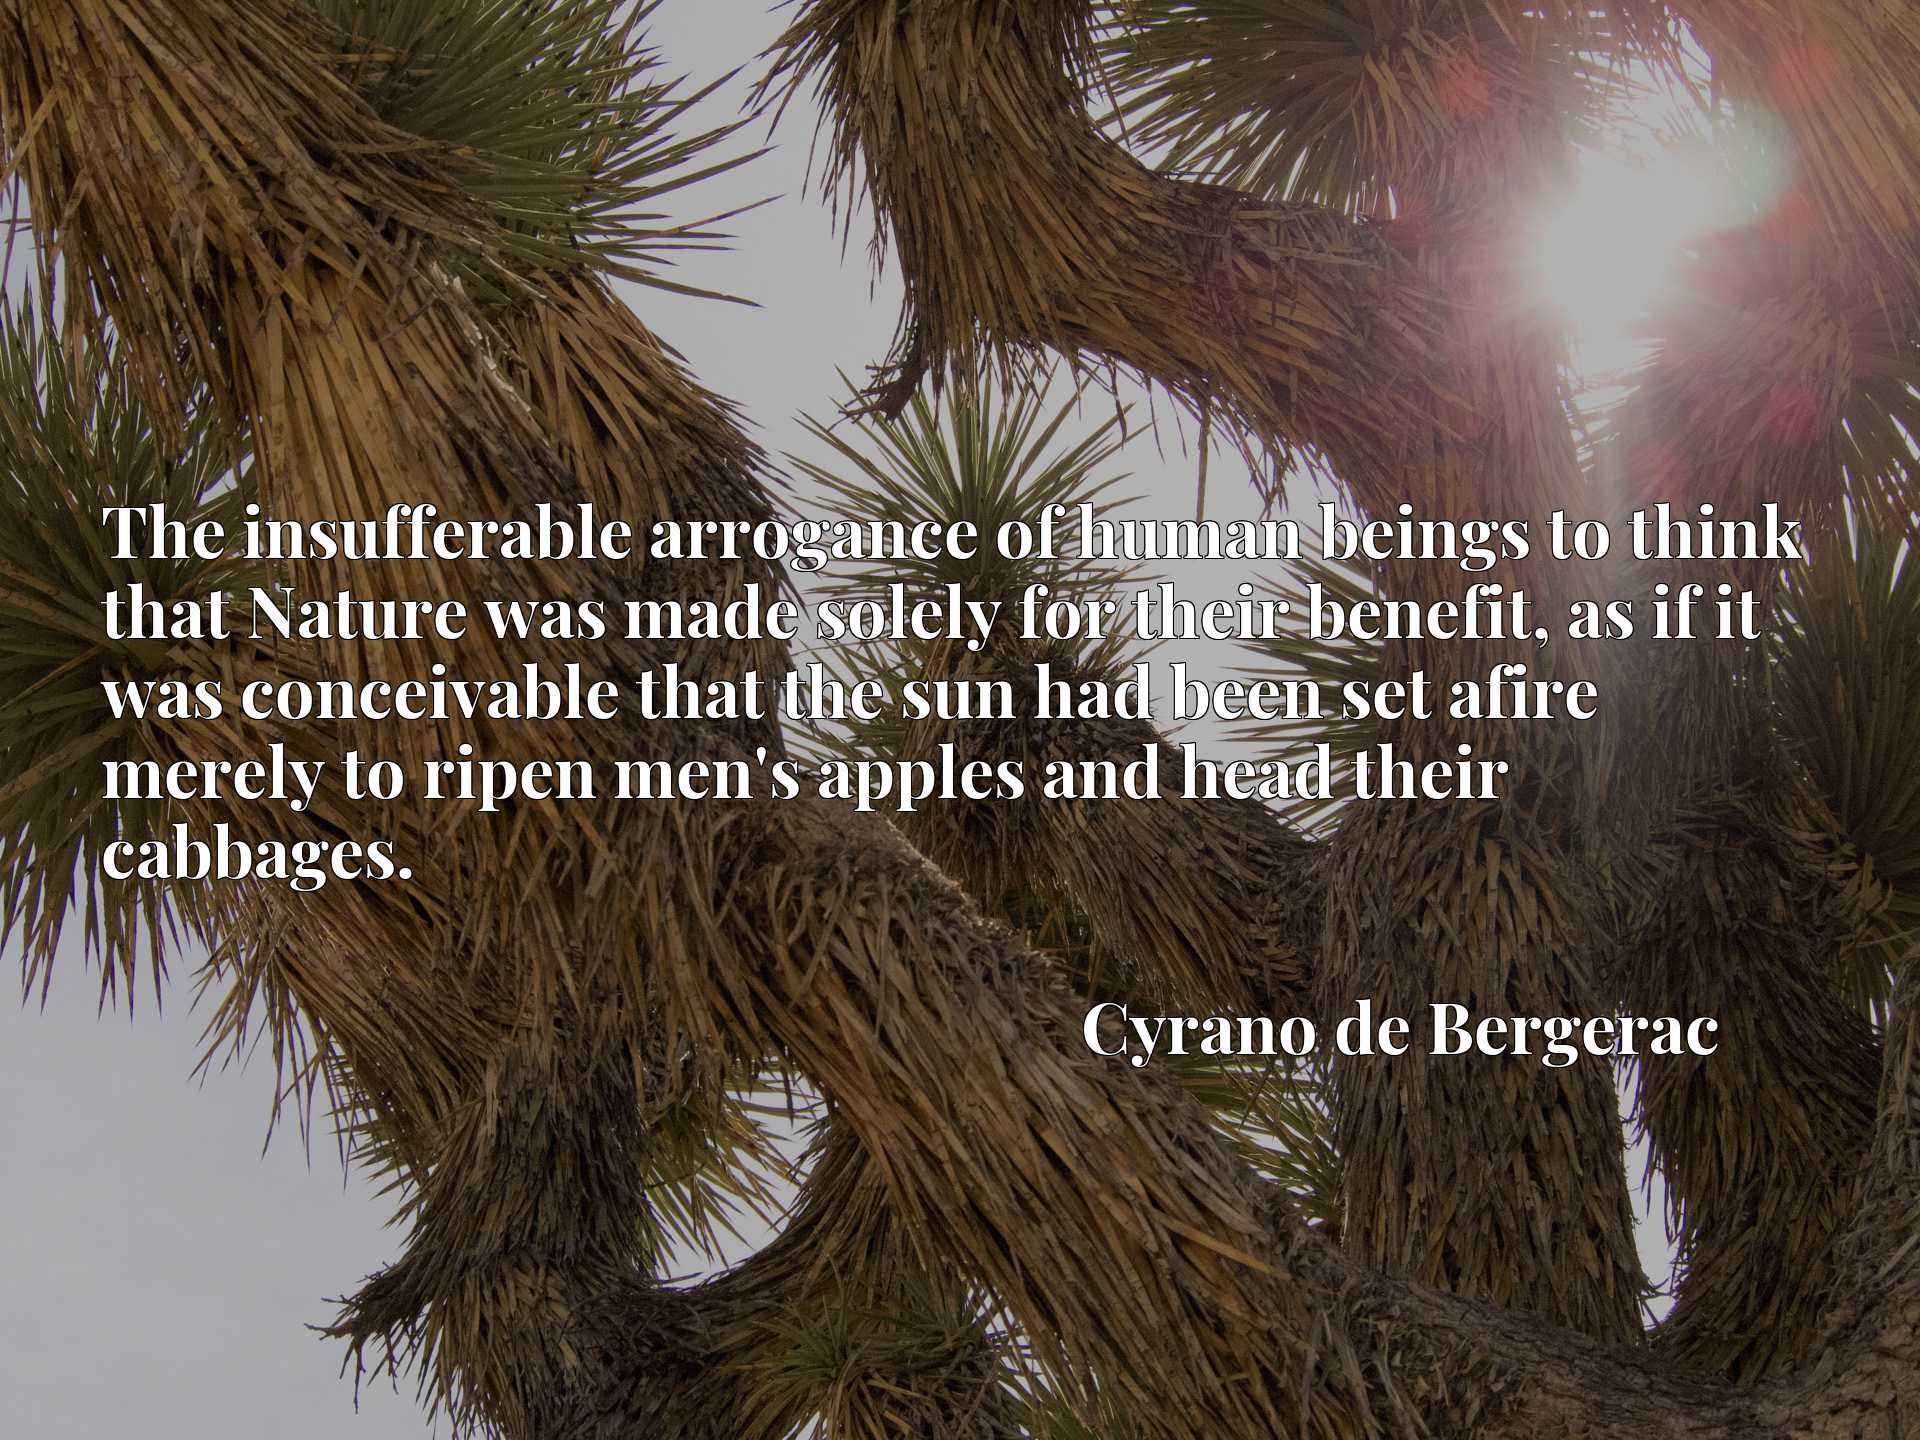 Quote Picture :The insufferable arrogance of human beings to think that Nature was made solely for their benefit, as if it was conceivable that the sun had been set afire merely to ripen men's apples and head their cabbages.